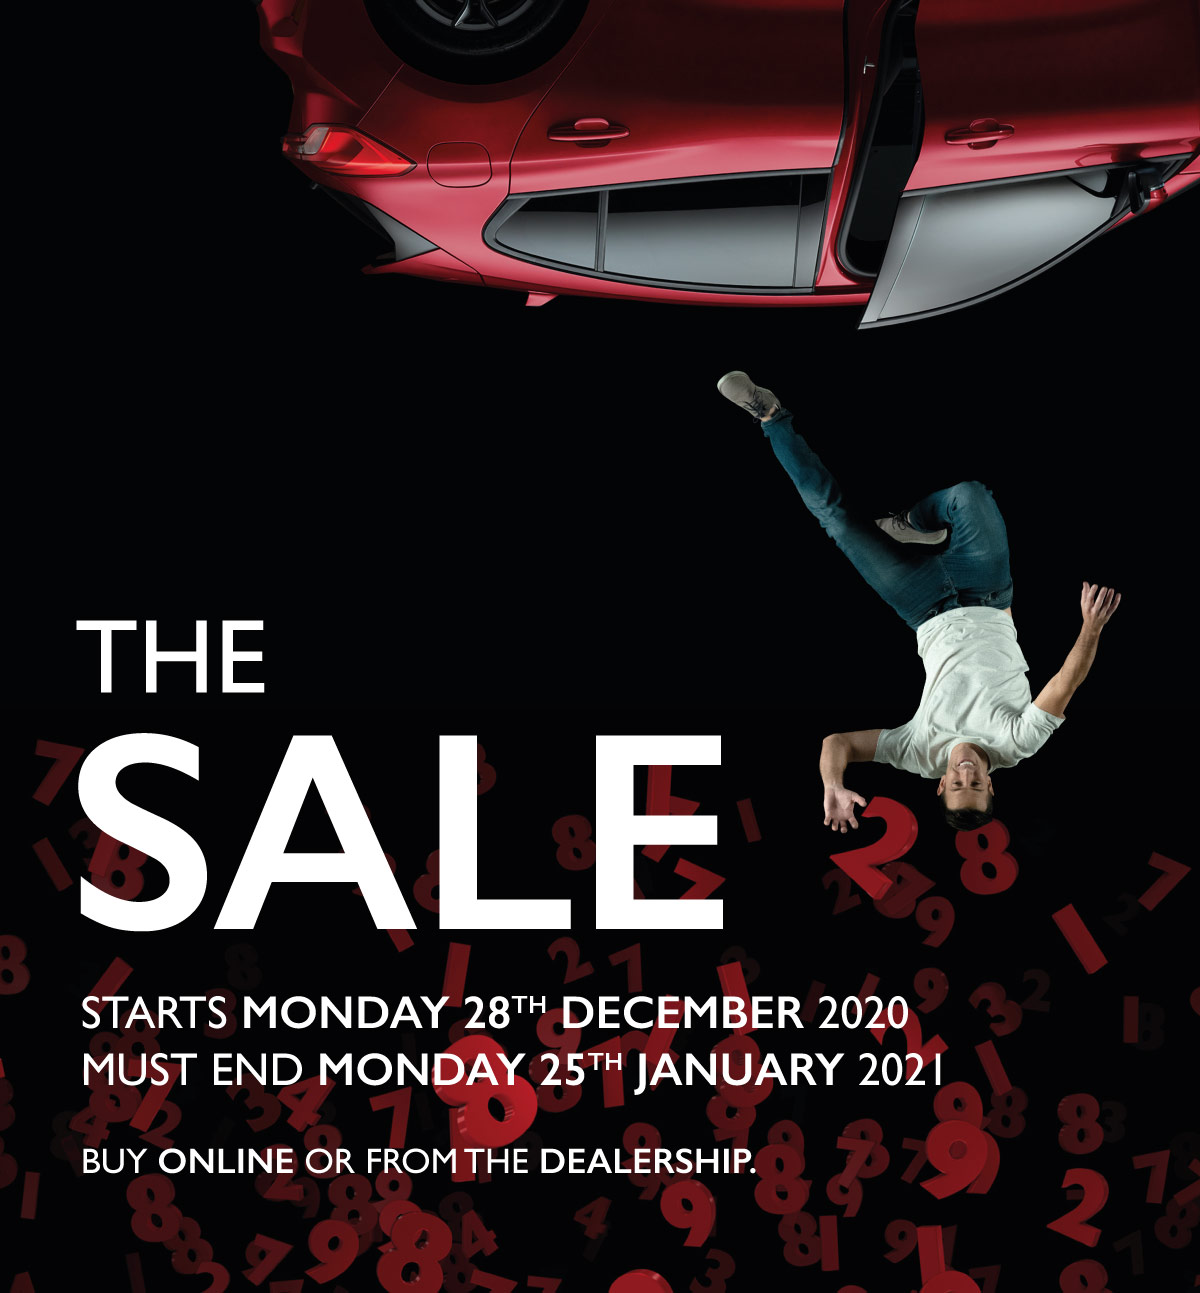 BSM MM Car The Sale Event 2020/2021